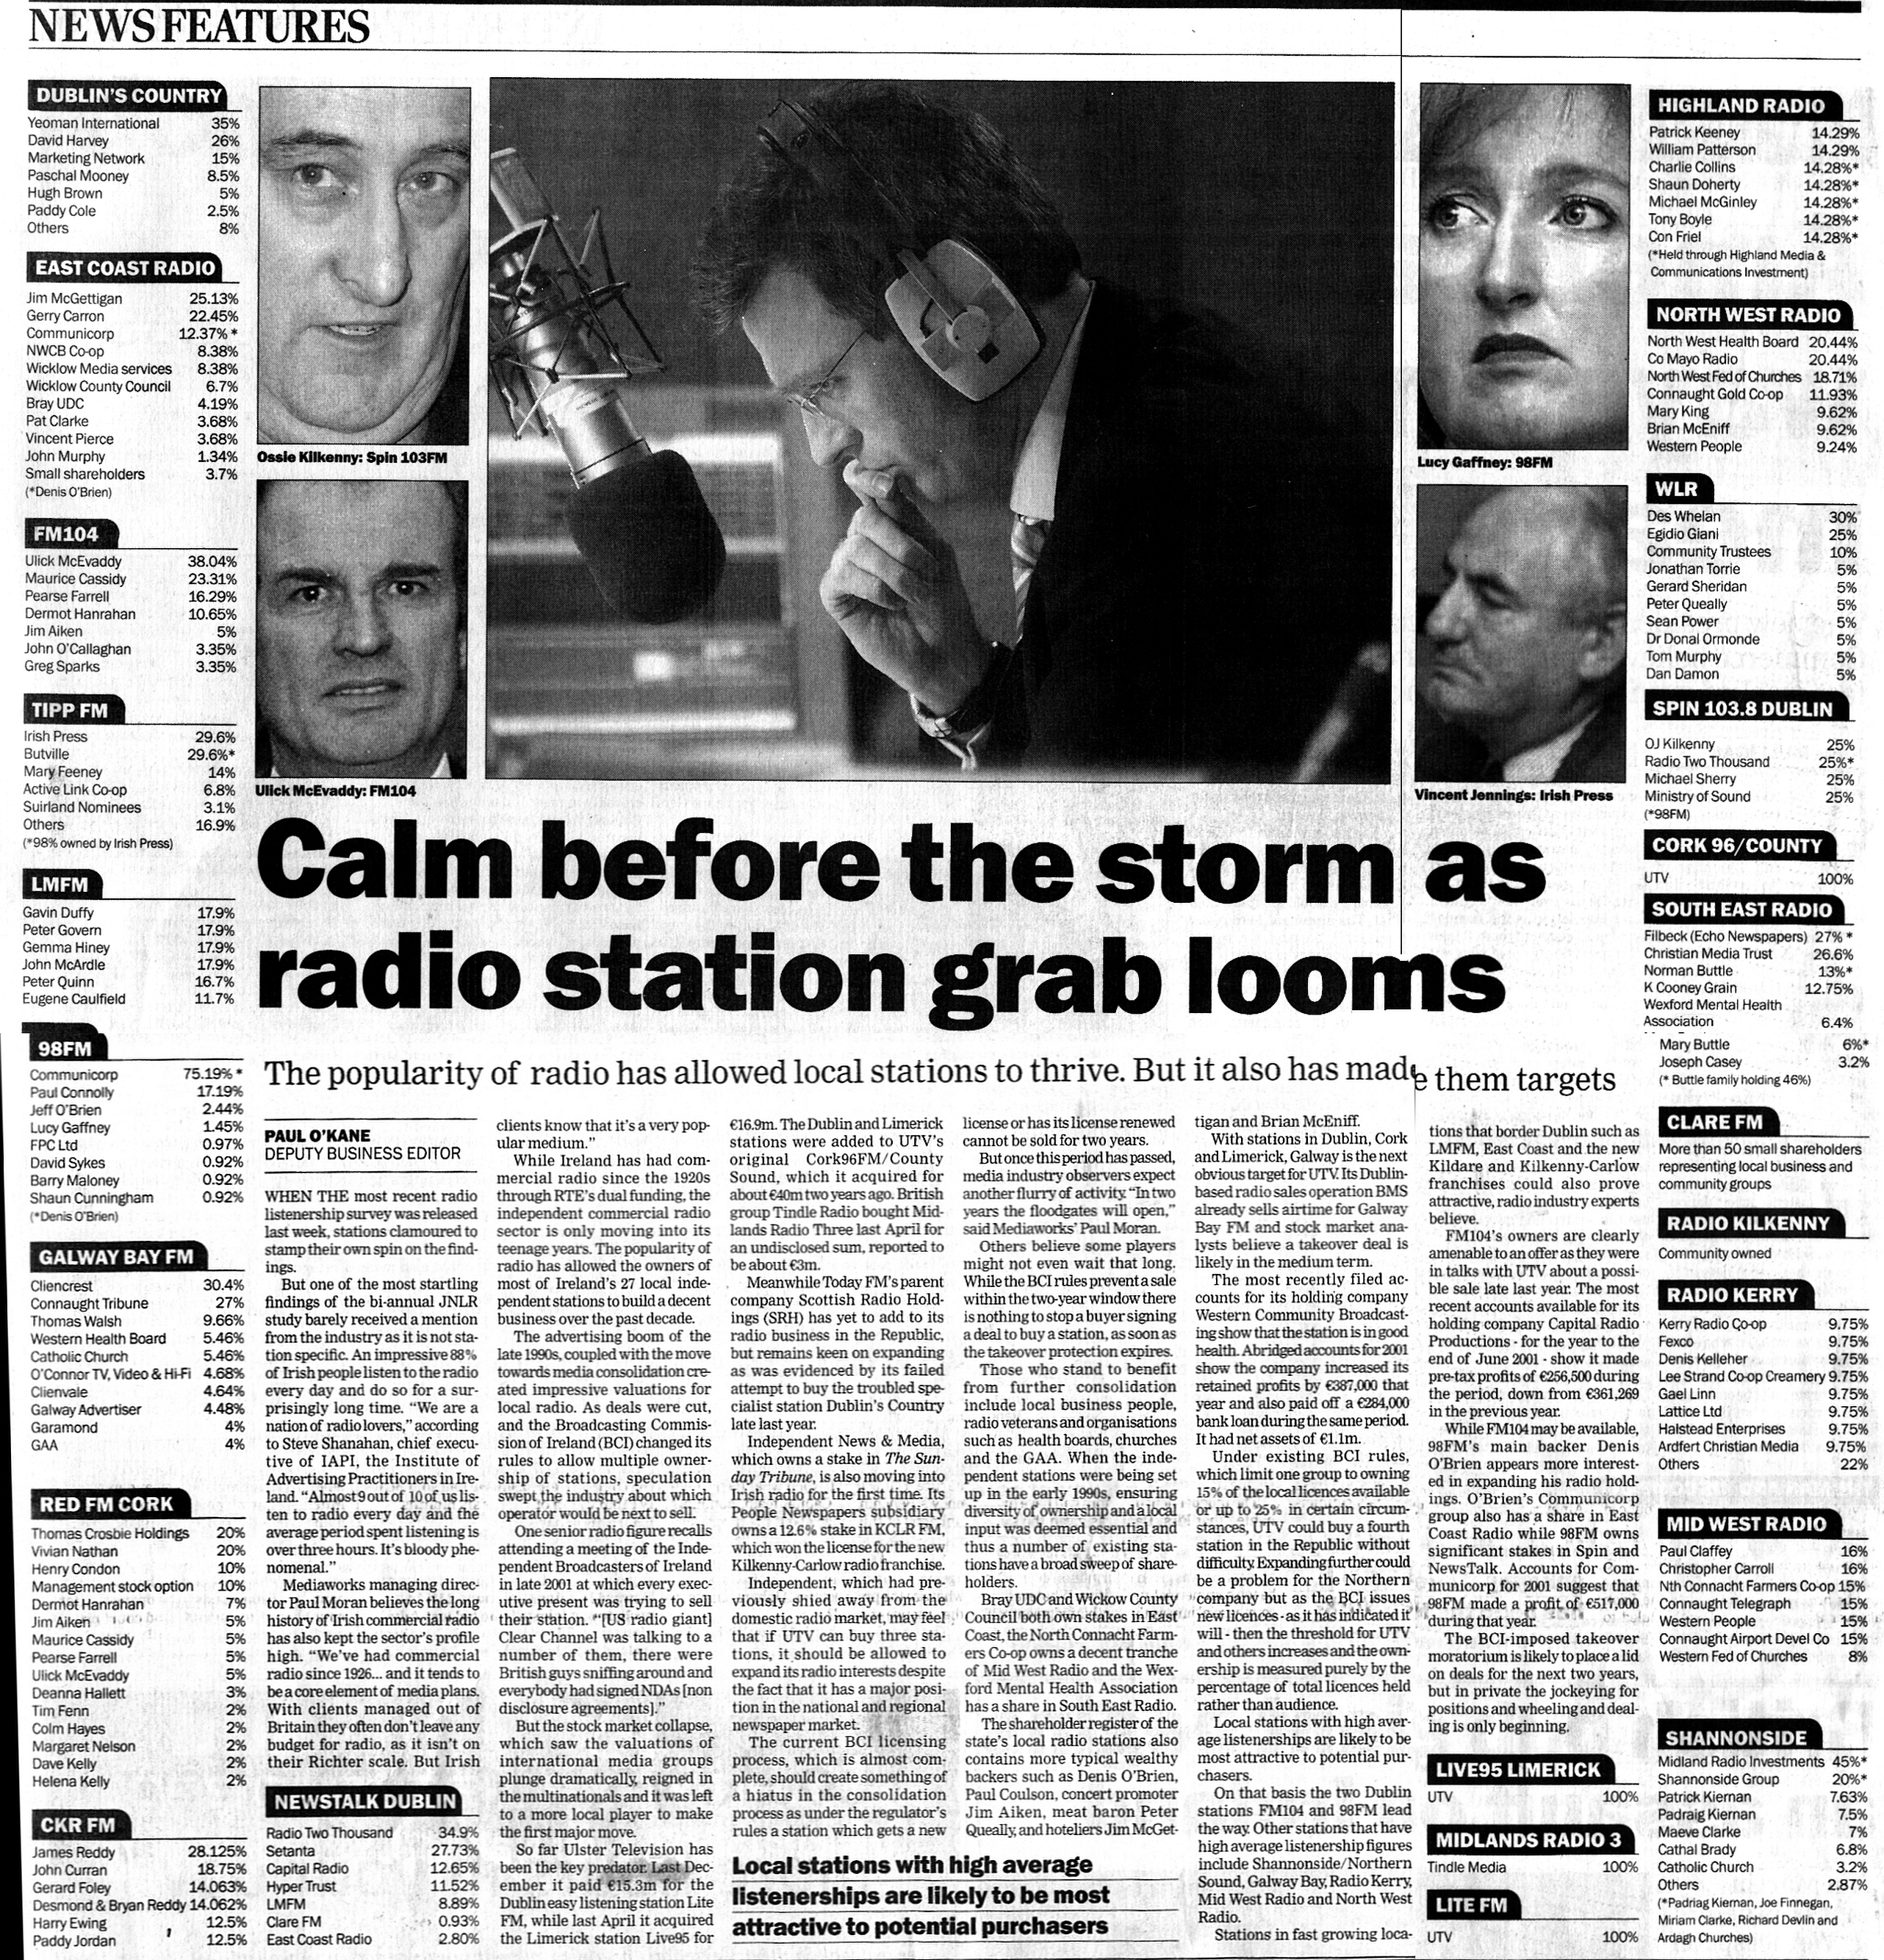 Sunday Tribune - Calm before the storm as radio station grab looms